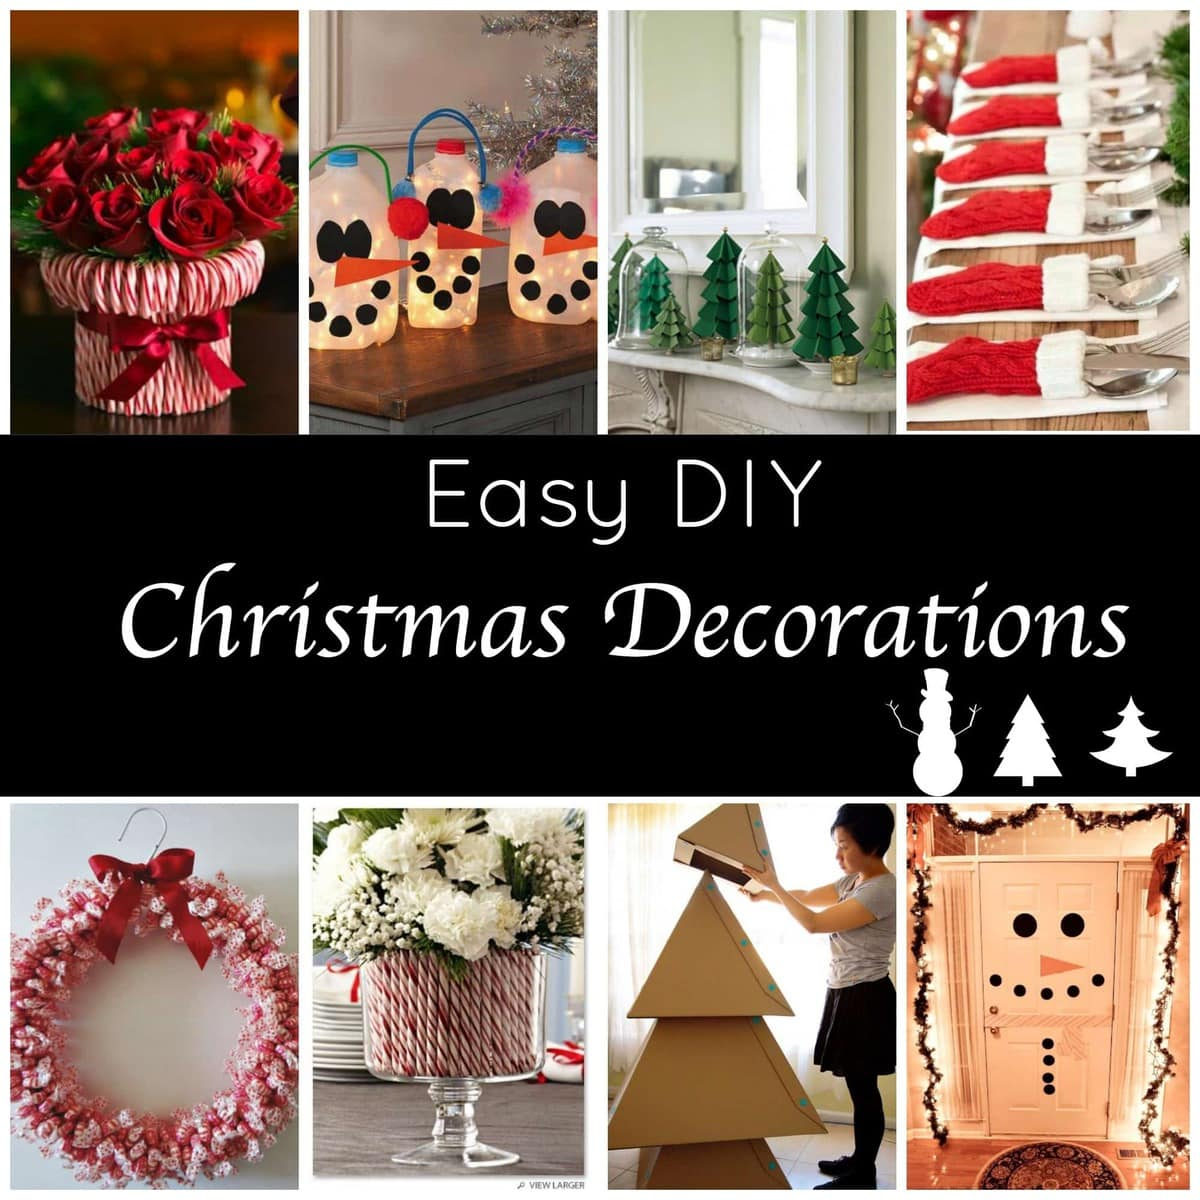 De Decoration Cute And Easy Diy Holiday Decorations For A Festive Home